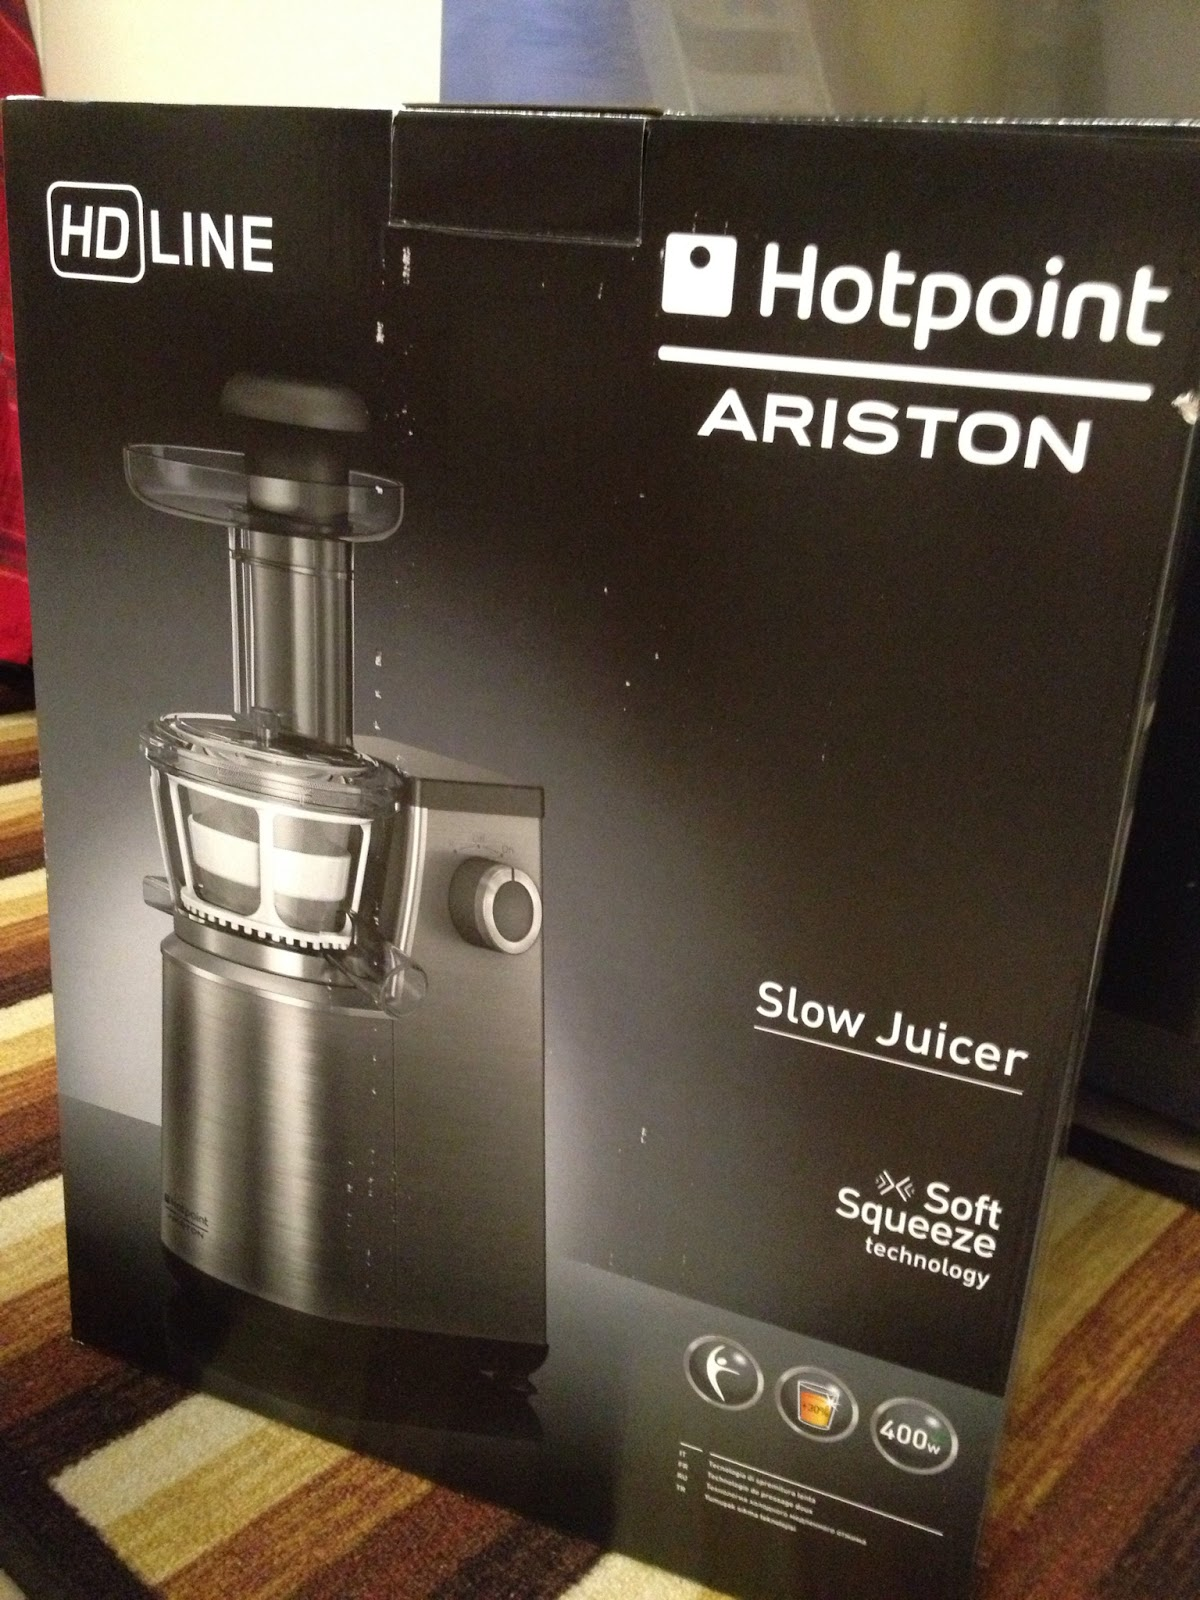 Hotpoint Ariston Slow Juicer Hd Line : ???????: ????Hotpoint ariston Slow juicer